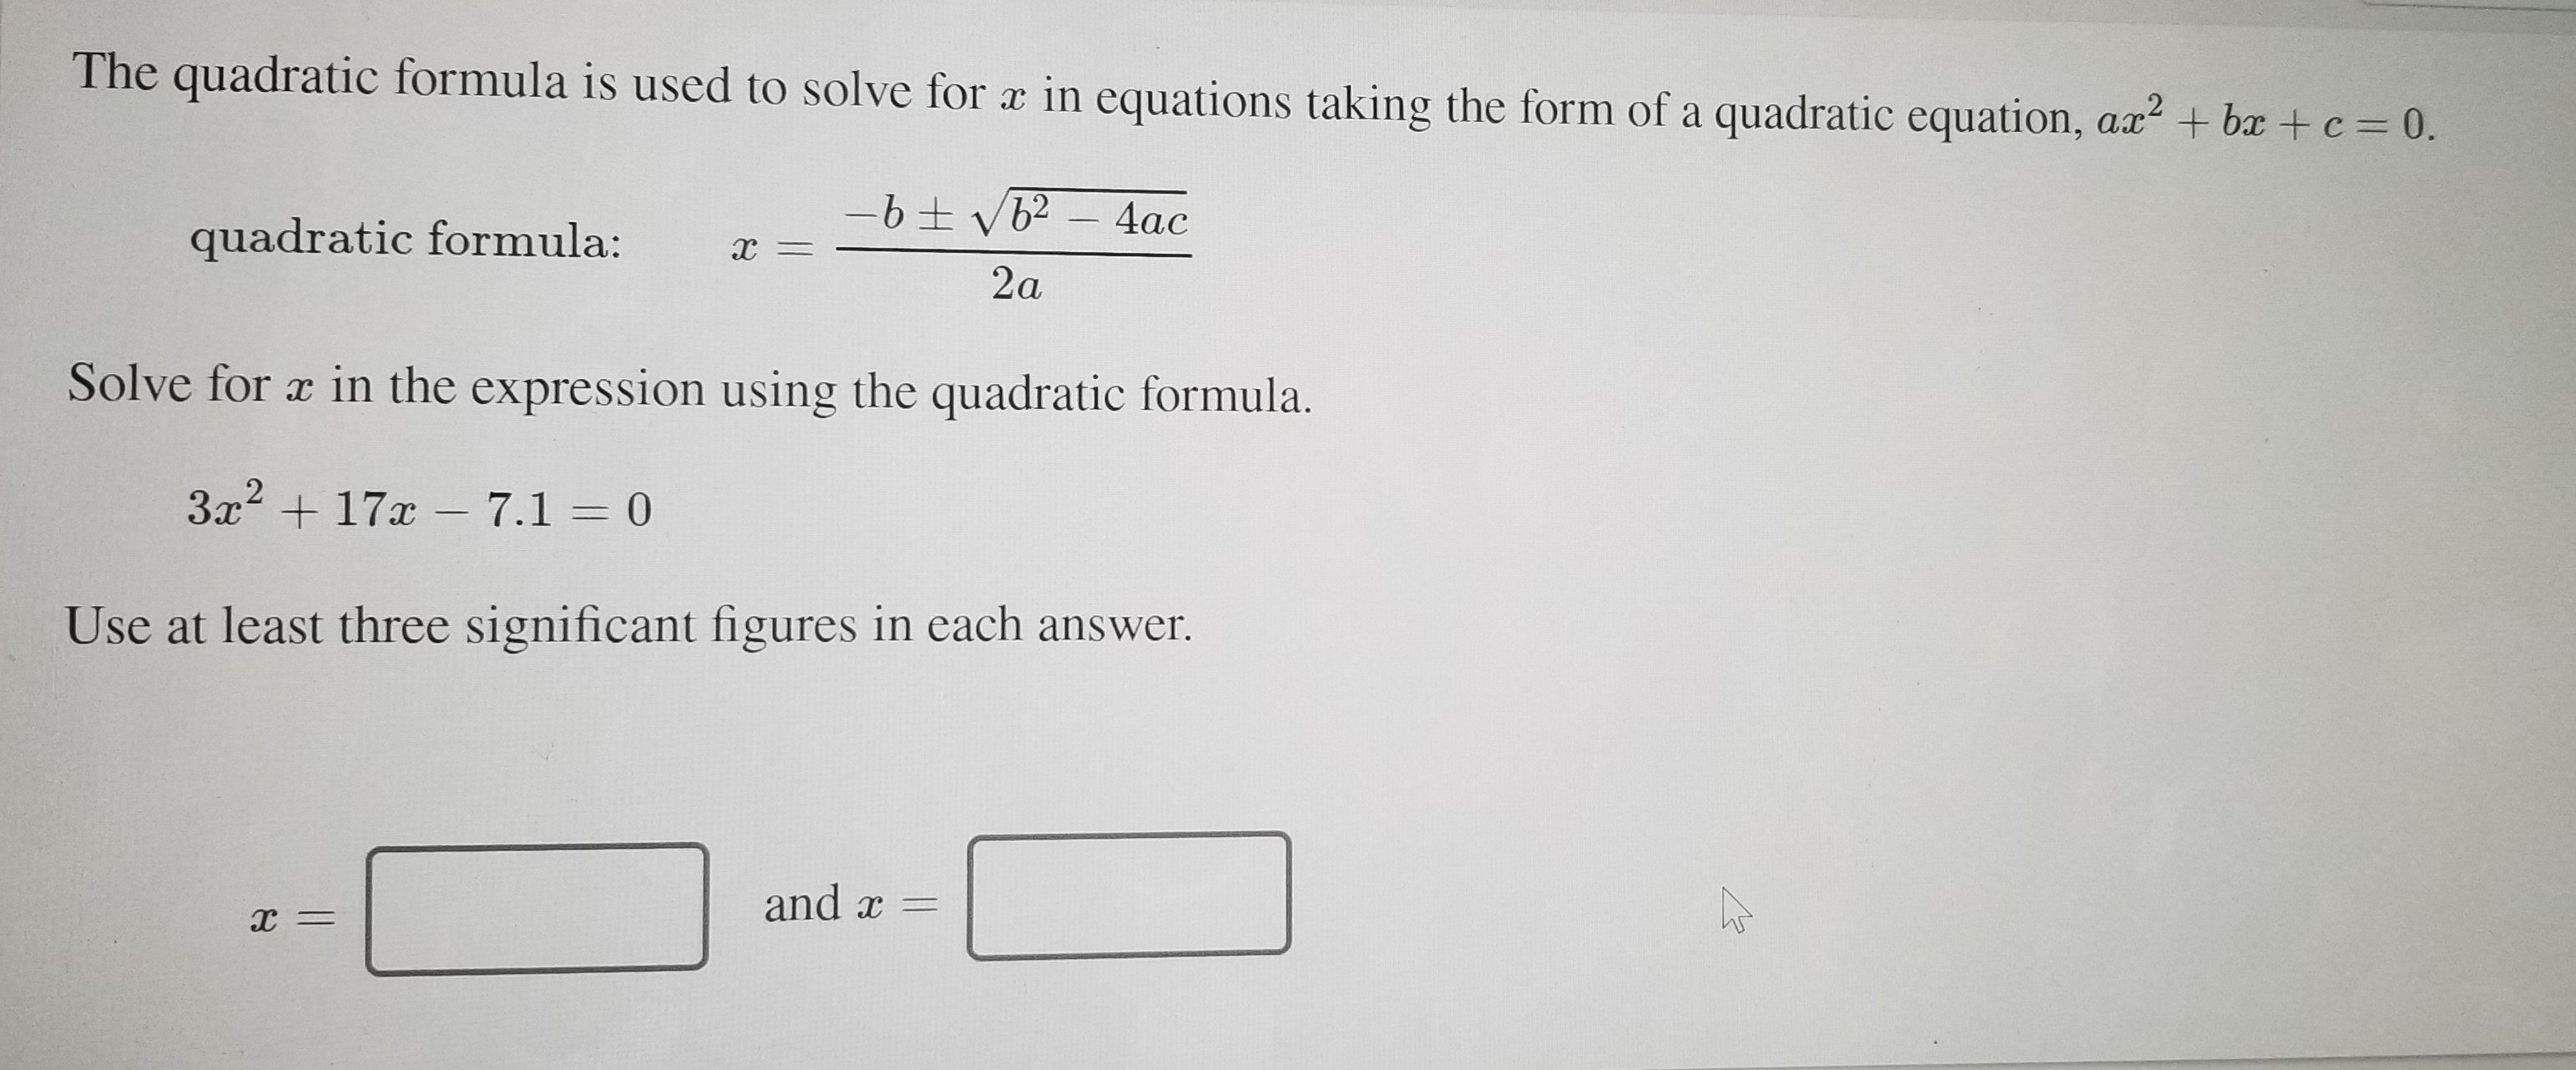 The quadratic formula is used to solve for x in equations taking the form of a quadratic equation, ax? + bx + c = 0. 4ac quadratic formula: х — 2a Solve for a in the expression using the quadratic formula. 3x + 17x – 7.1 = 0 Use at least three significant figures in each answer. and x = х —